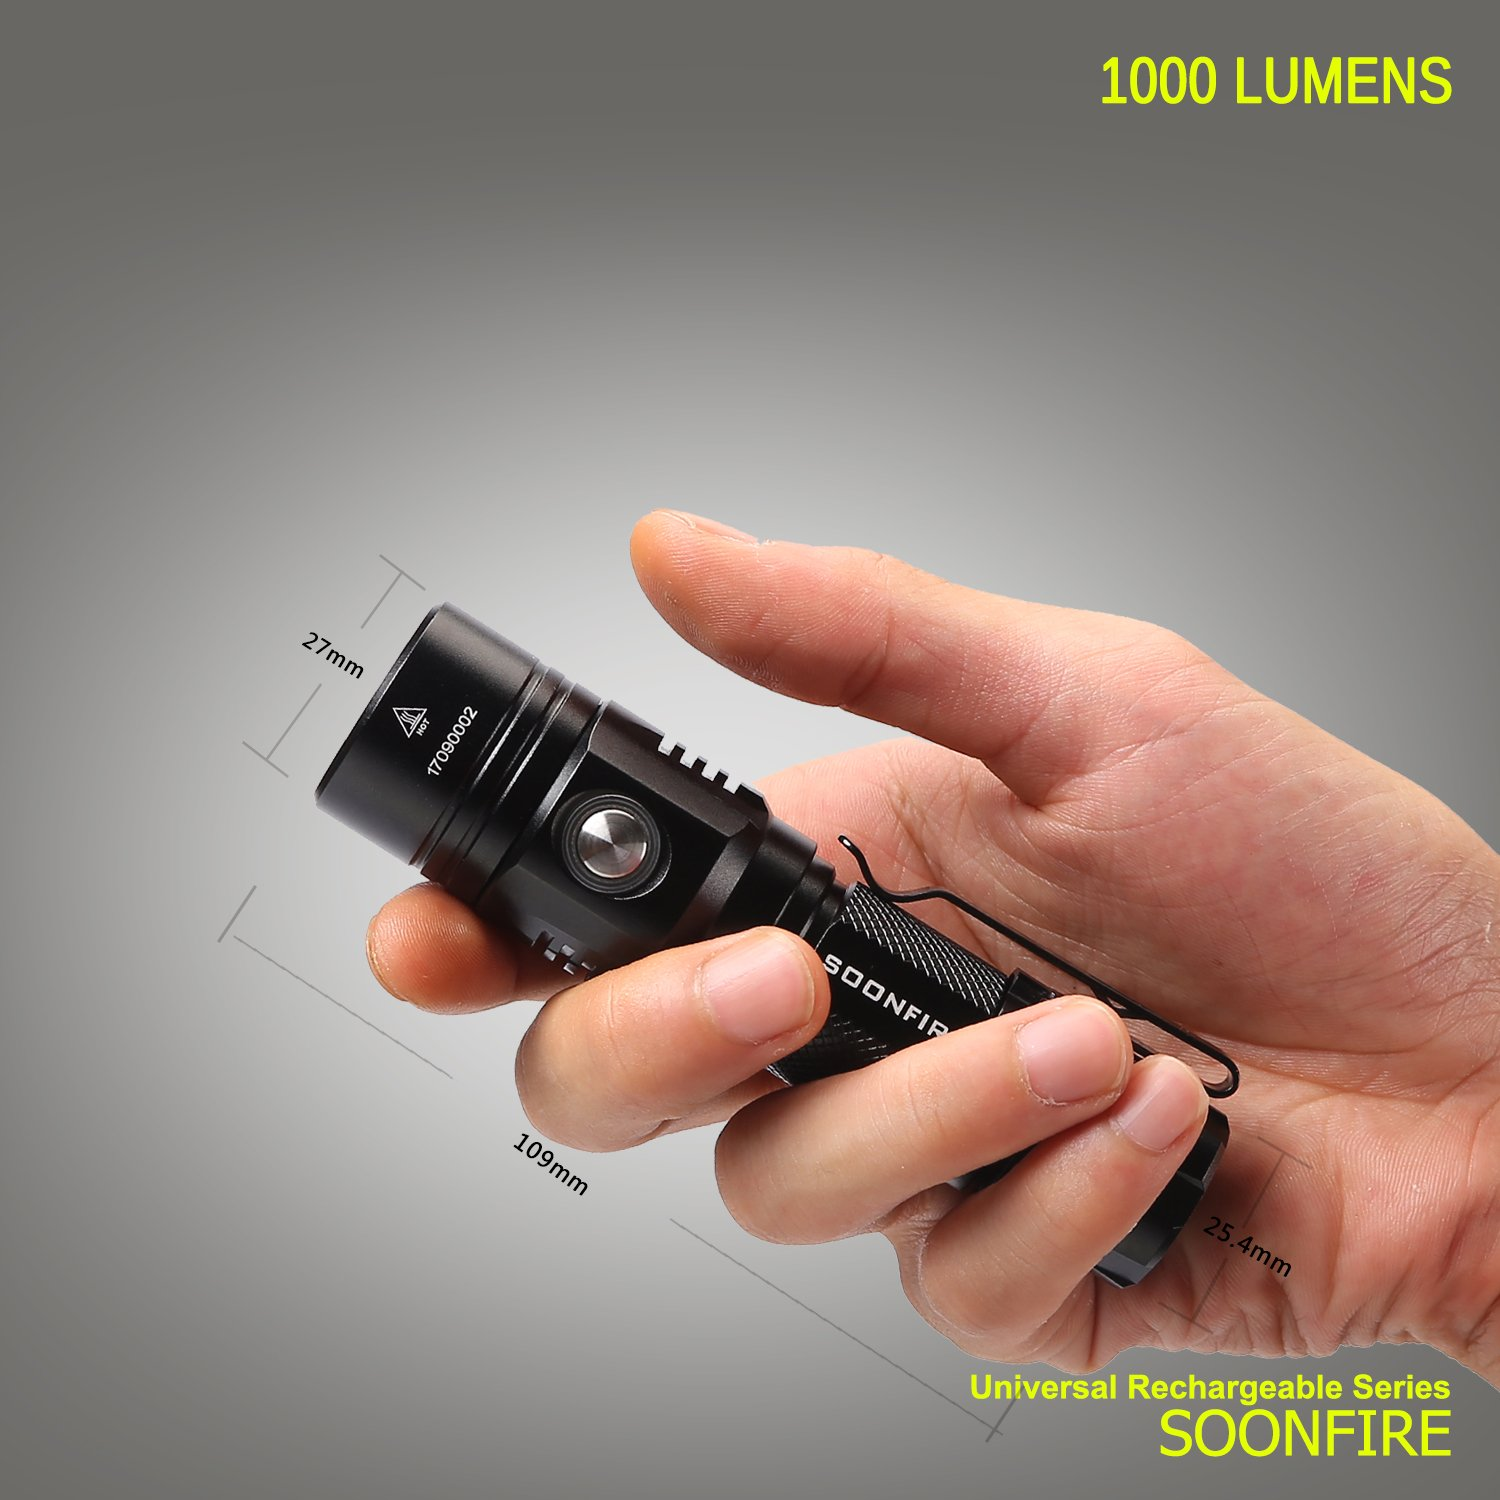 Cree XP-L LED Rechargeable Flashlight,Soonfire E07 USB Waterproof 1000 Lumen Compact EDC Flashlight with type 18650 3400mAh rechargeable Li-ion battery by soonfire (Image #8)